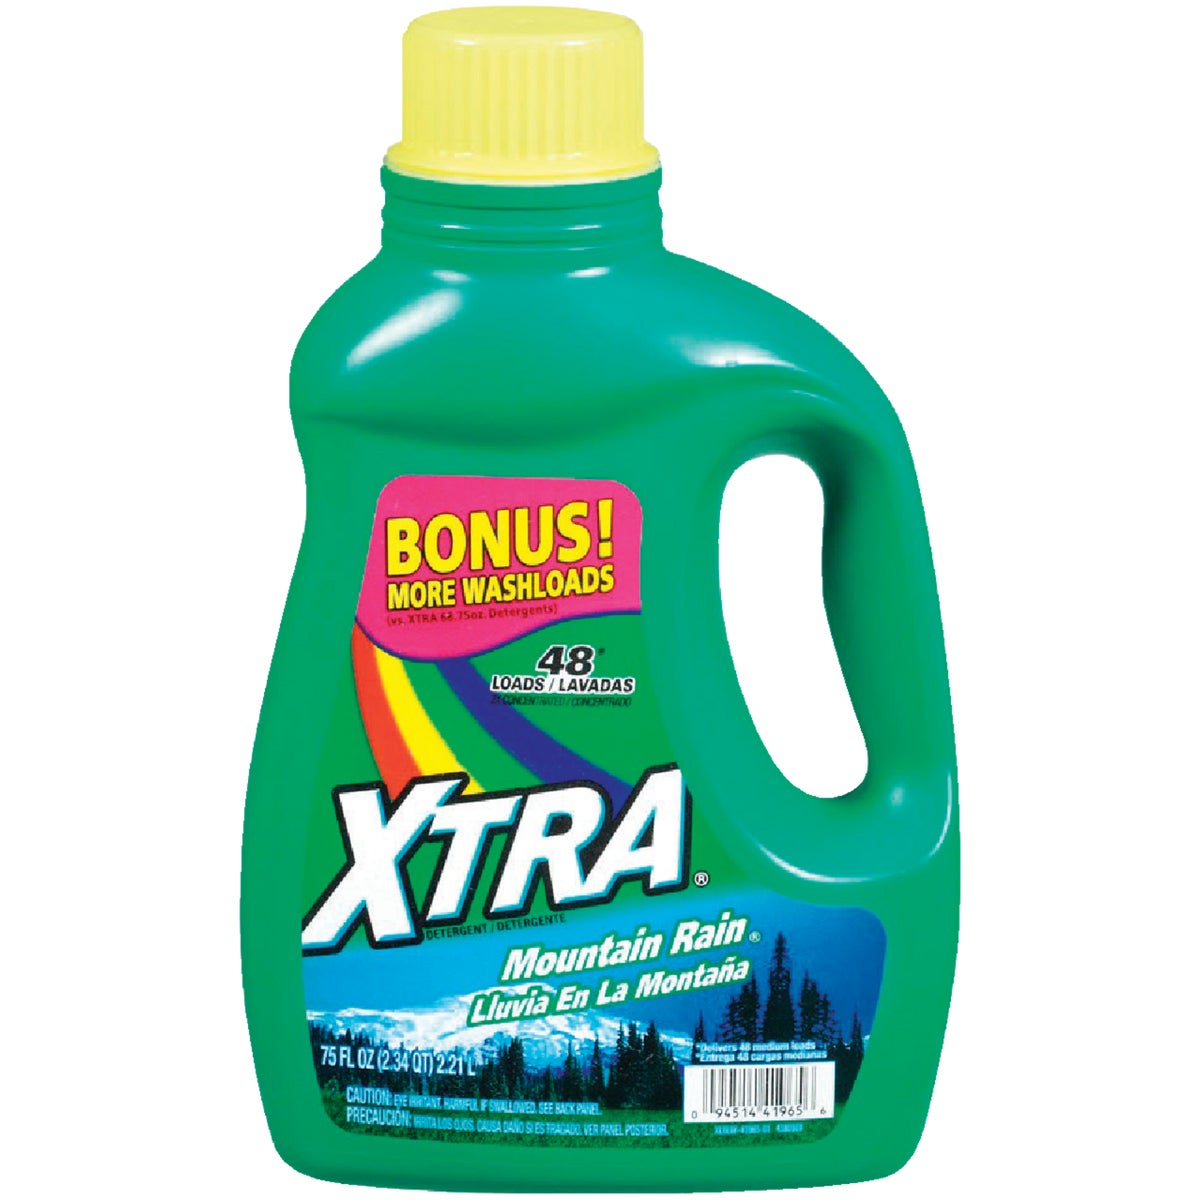 XTRA 2X Concentrated Liquid Laundry Detergent, 41965